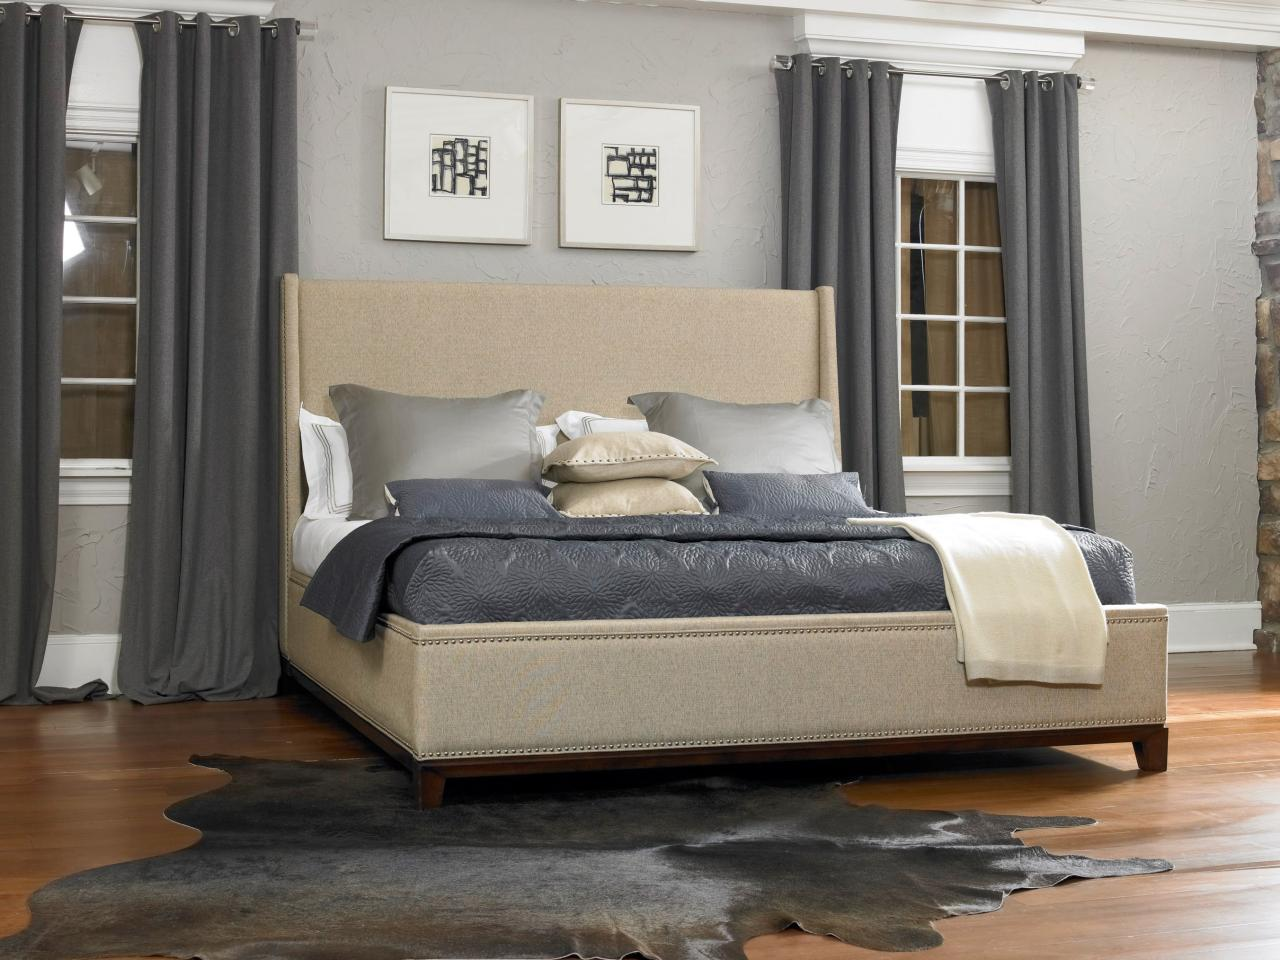 Ditch the carpet 12 bedroom flooring options bedrooms for Bedroom flooring options